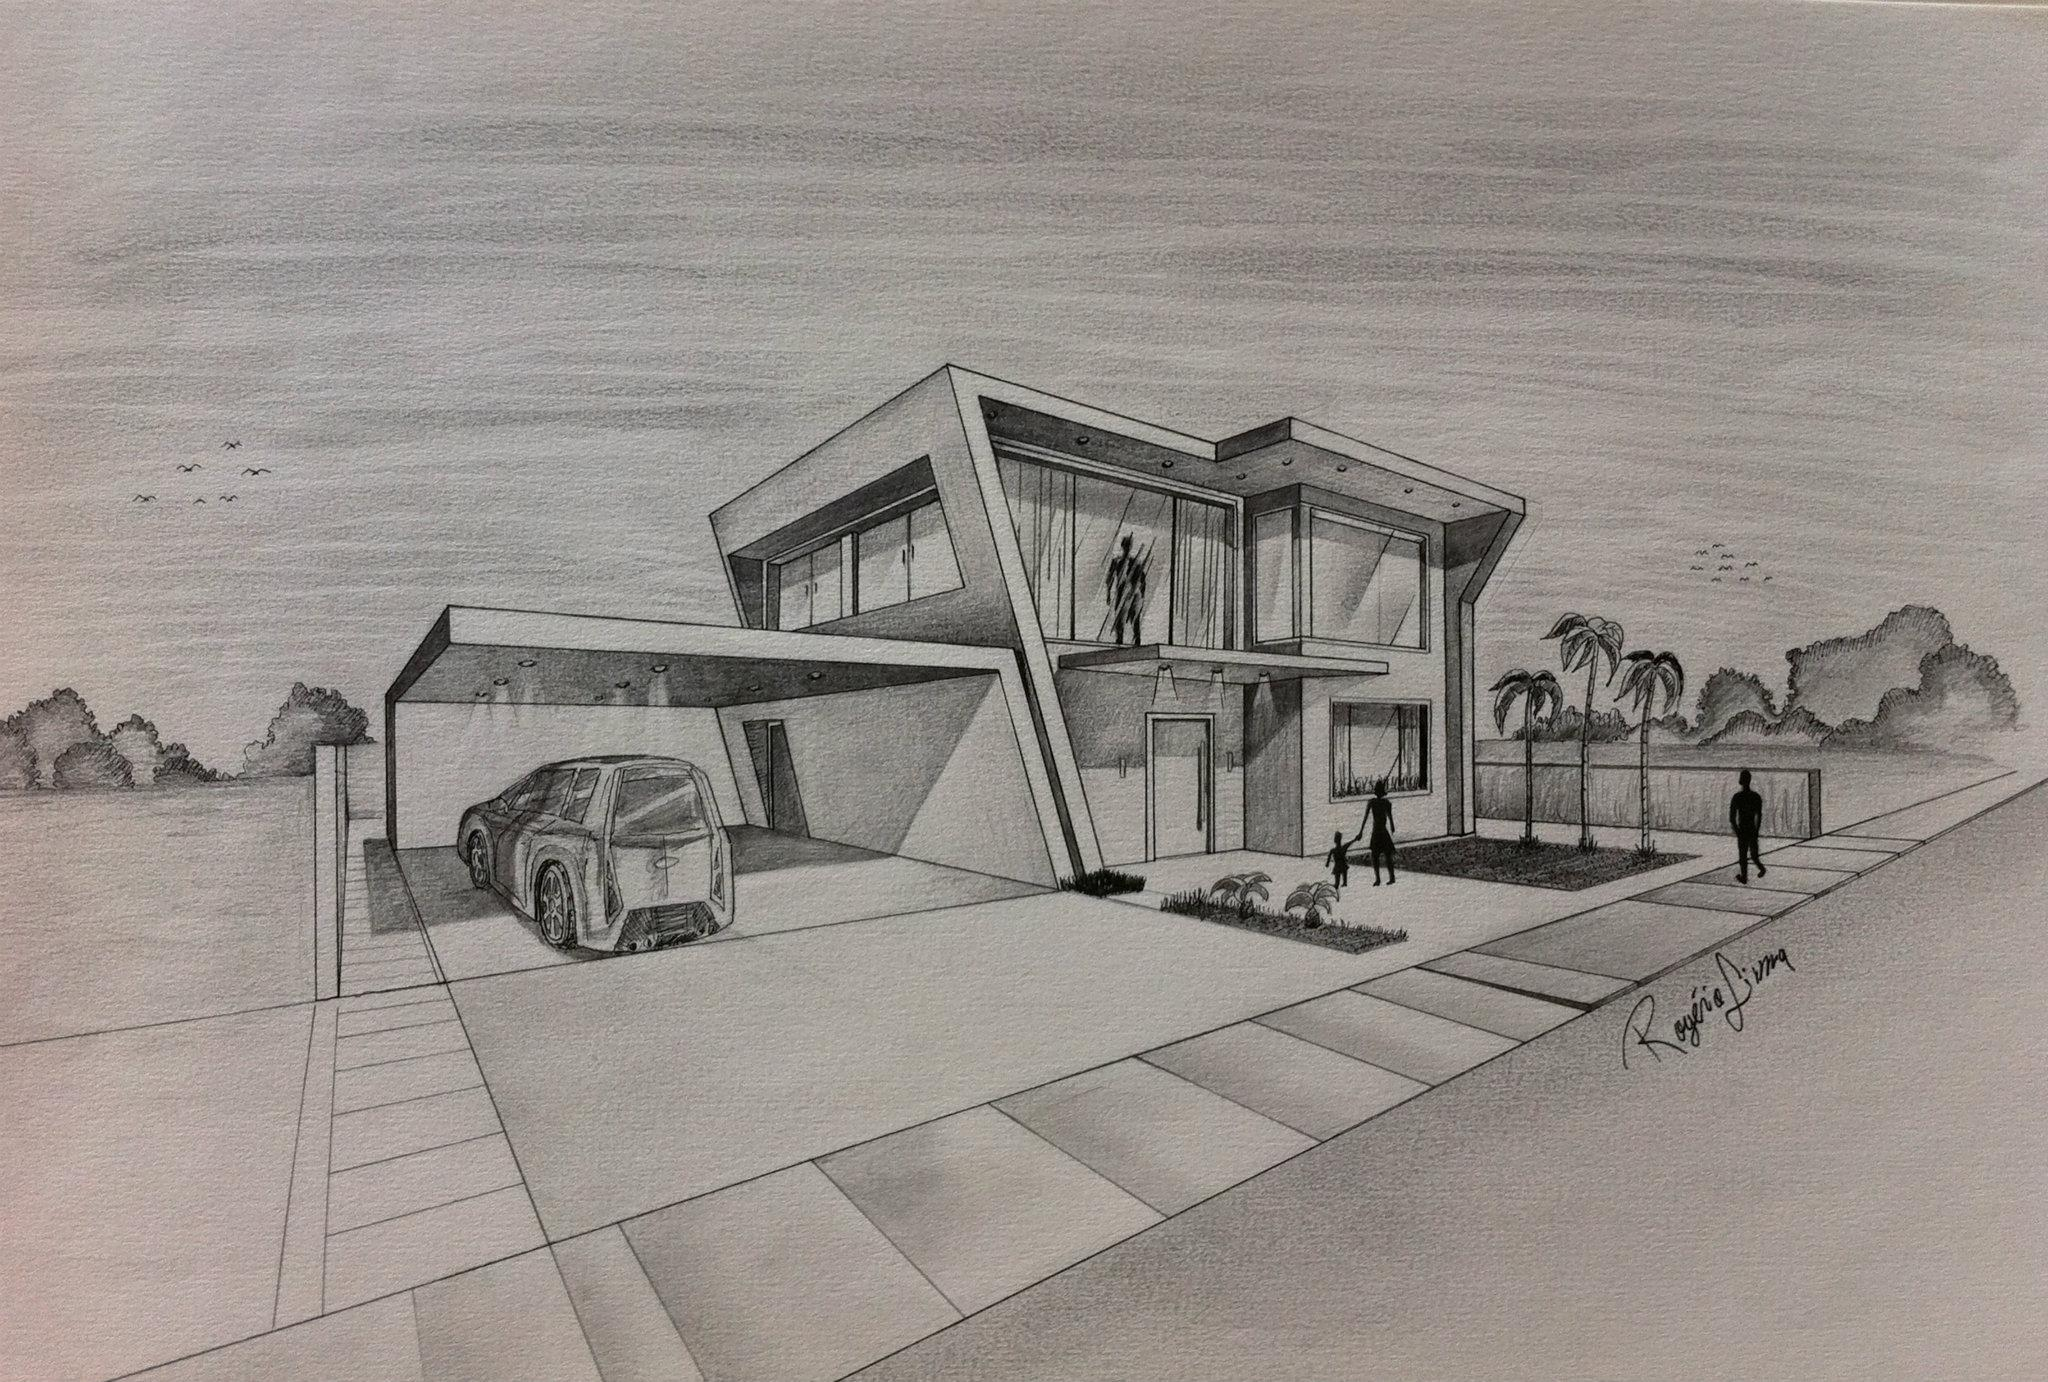 Architect hand drawing at free for for Free architectural drawing program